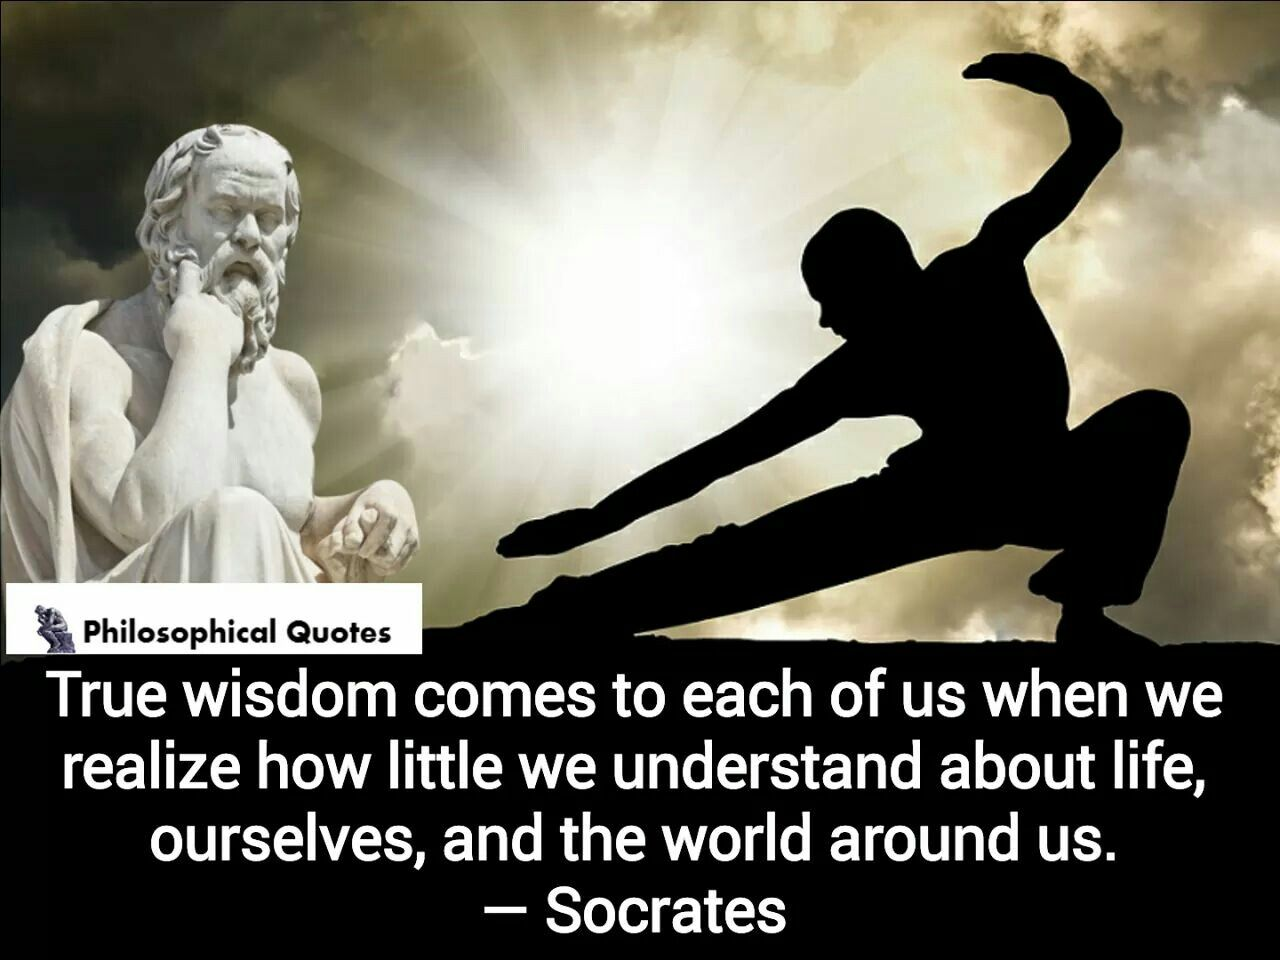 Pin by Unmar Nishan on Quotes | Philosophical quotes ...